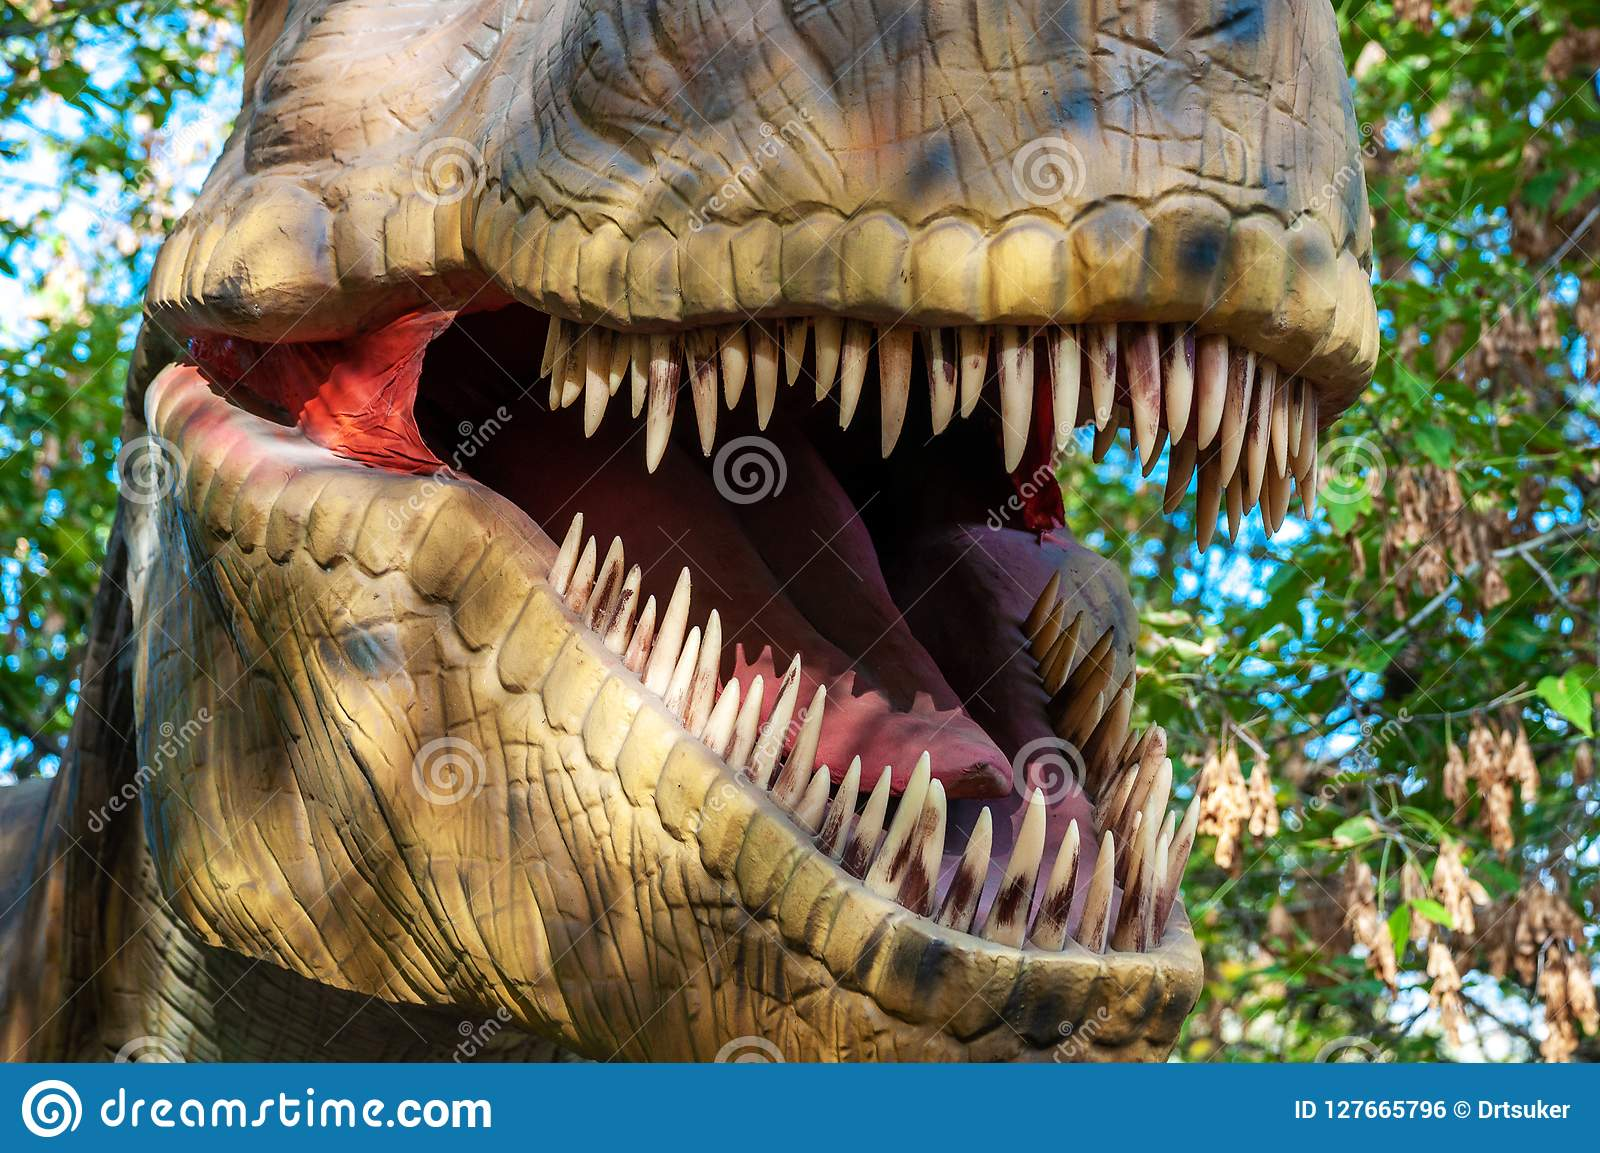 The open mouth of a tyrannosaur with huge sharp teeth